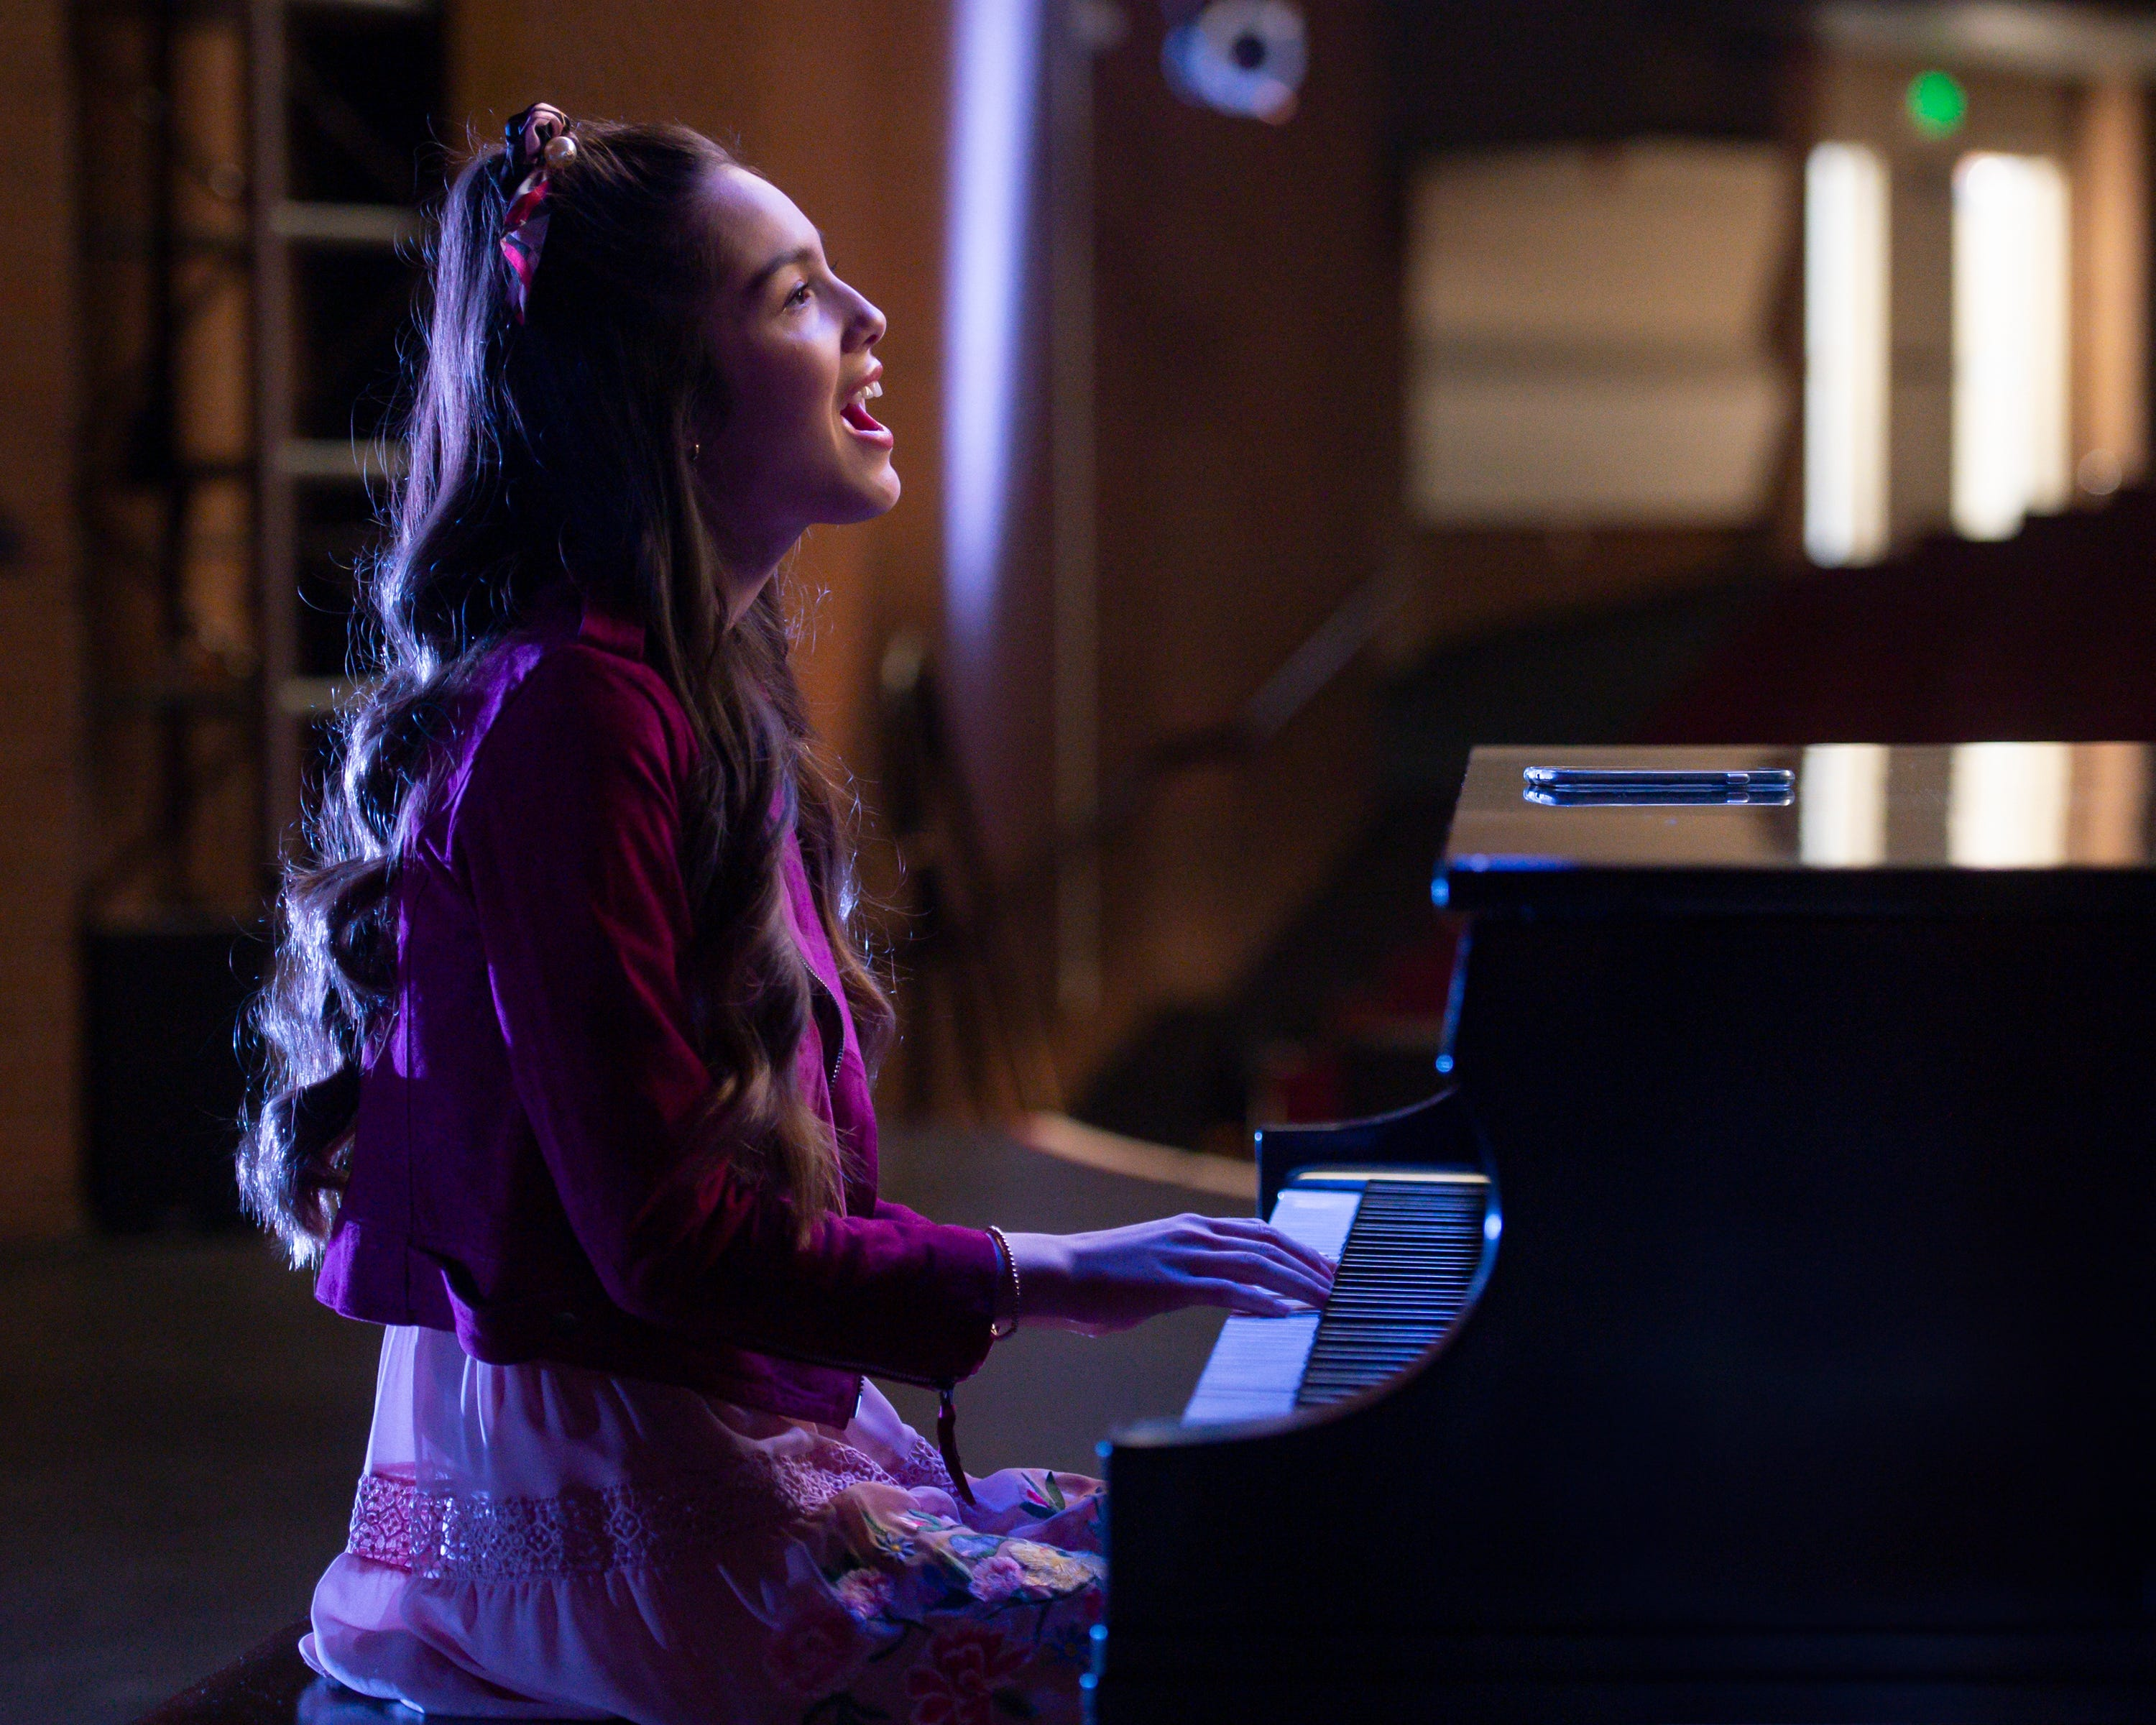 Olivia Rodrigo on her new  High School Musical  song and her image:  I m just living my life